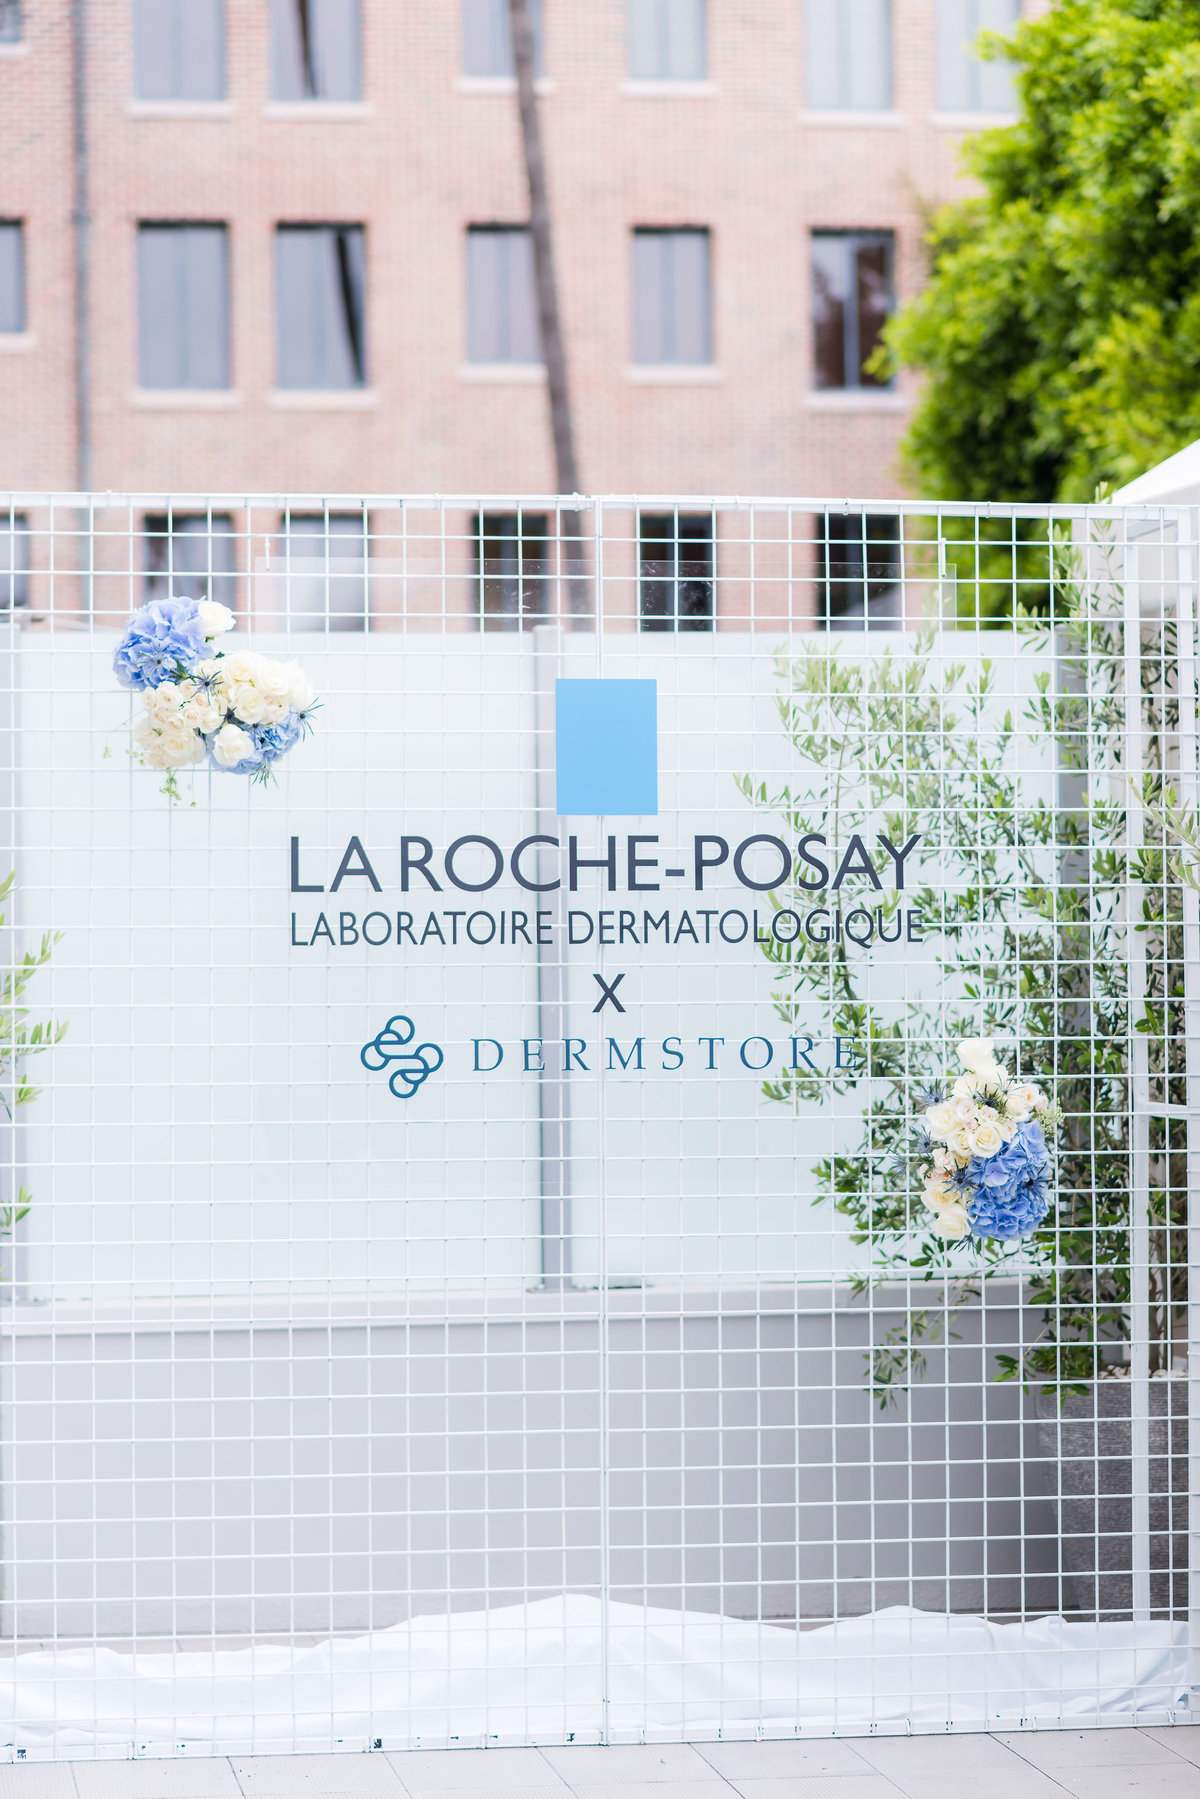 LA-ROCHE-POSAY-LOS-ANGELES-95